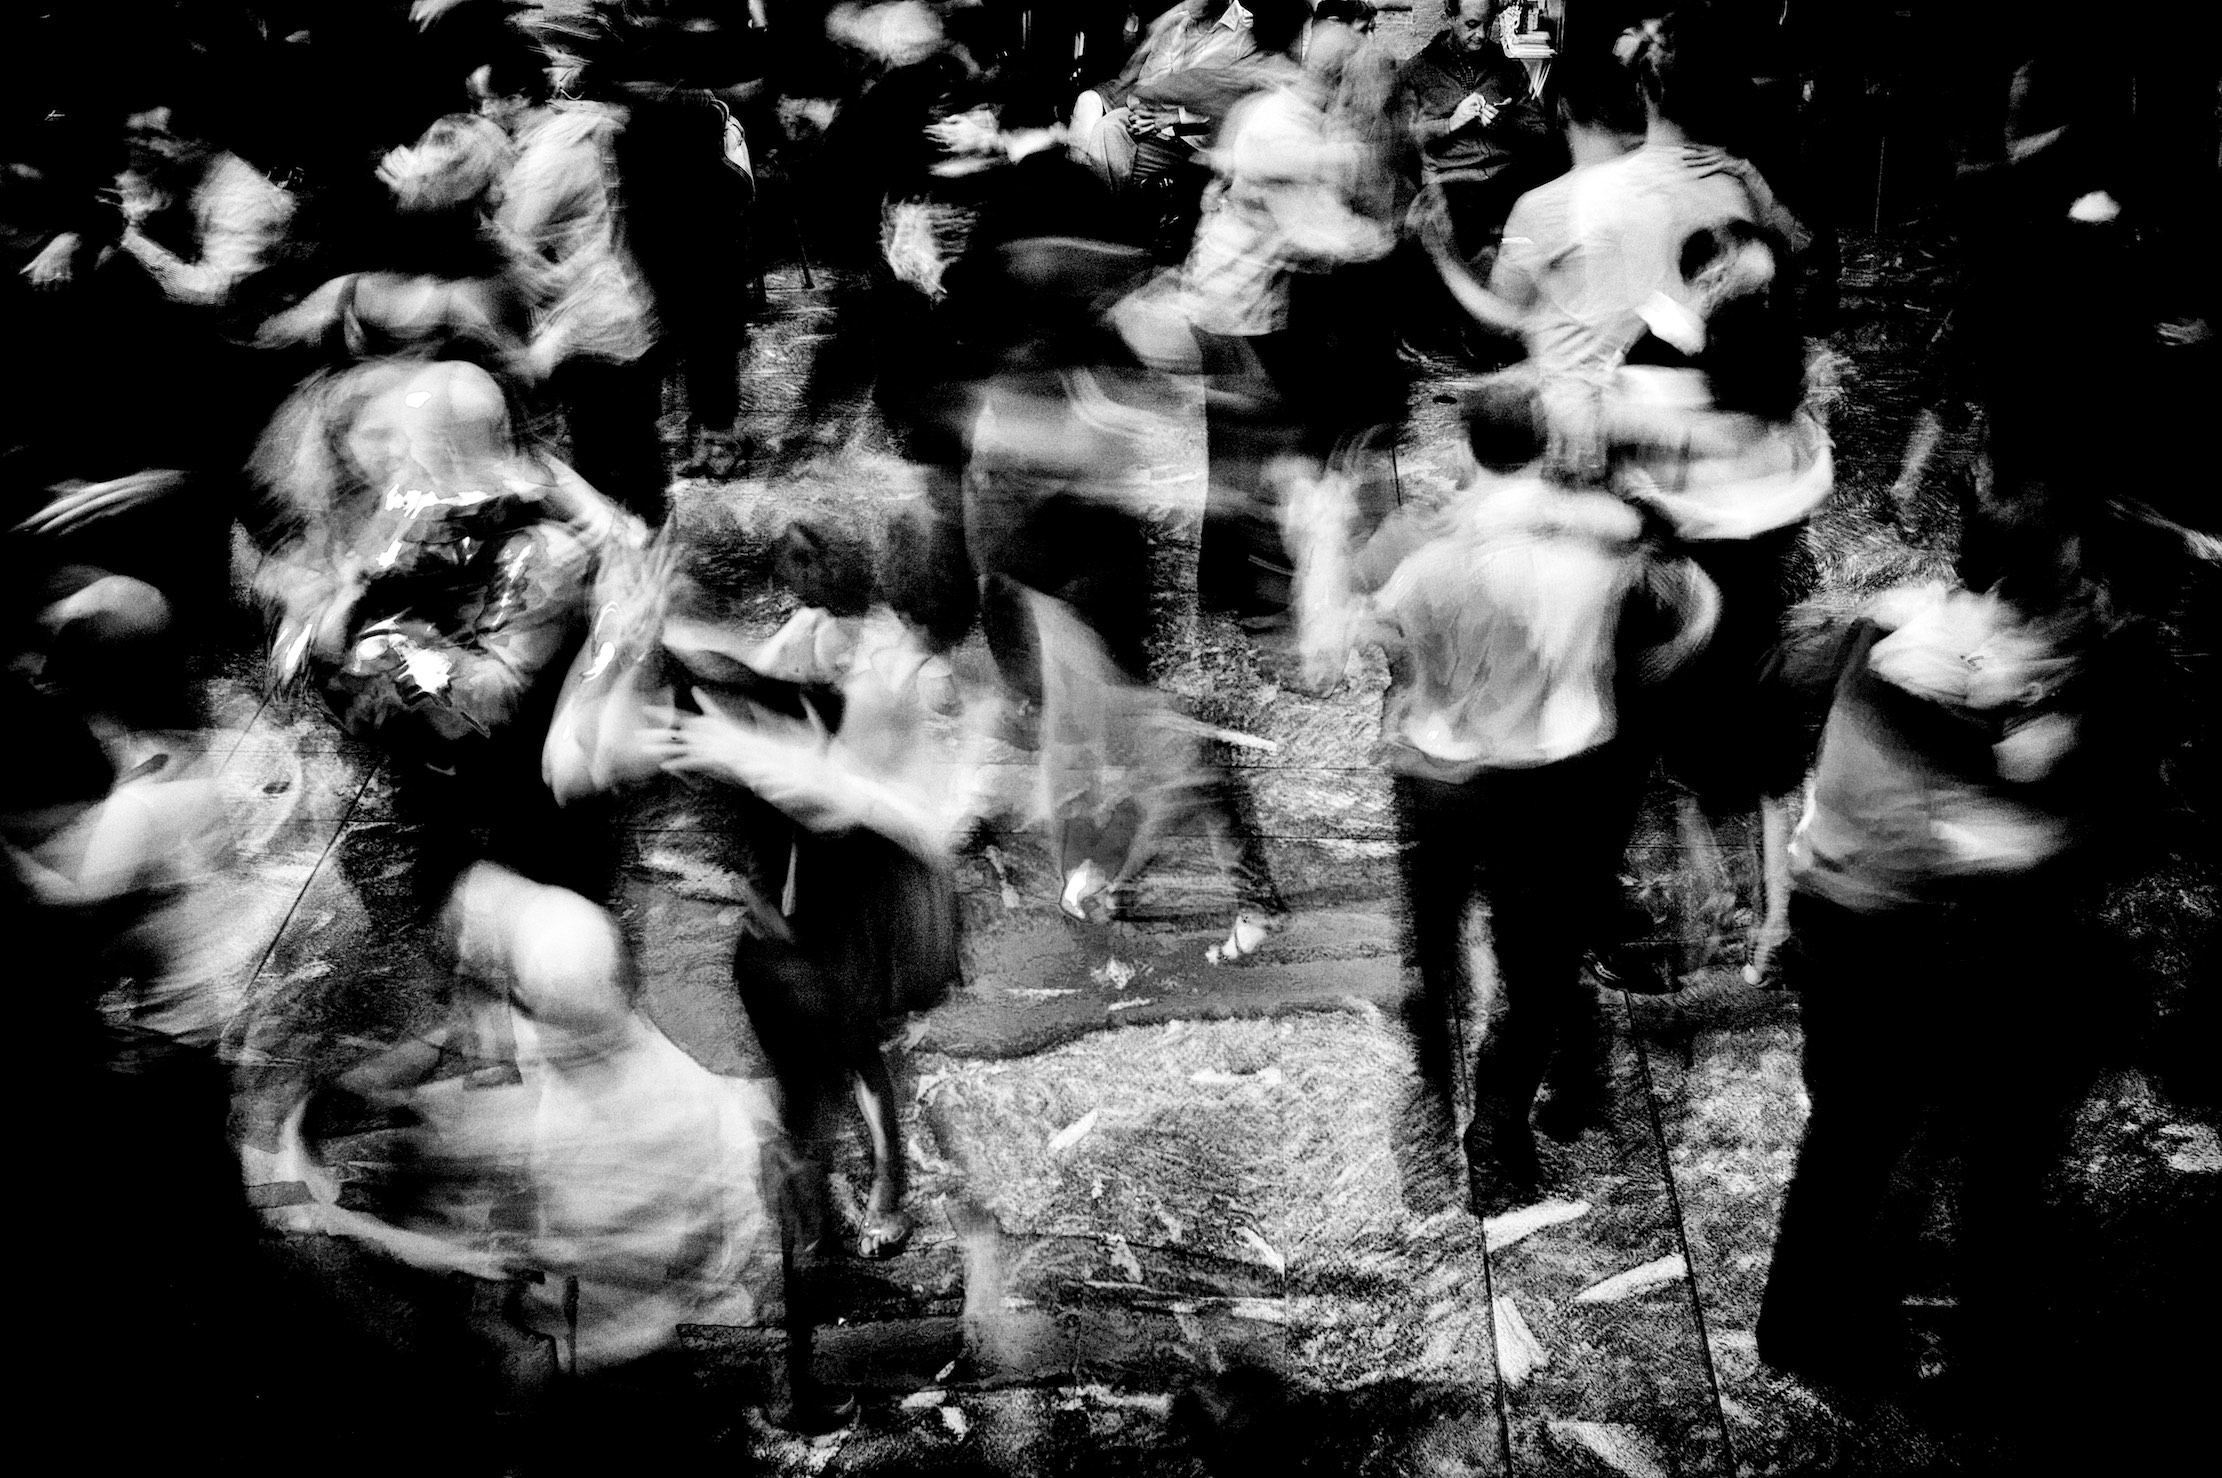 Dancing people, art, massimo volonte fotografo, black and white